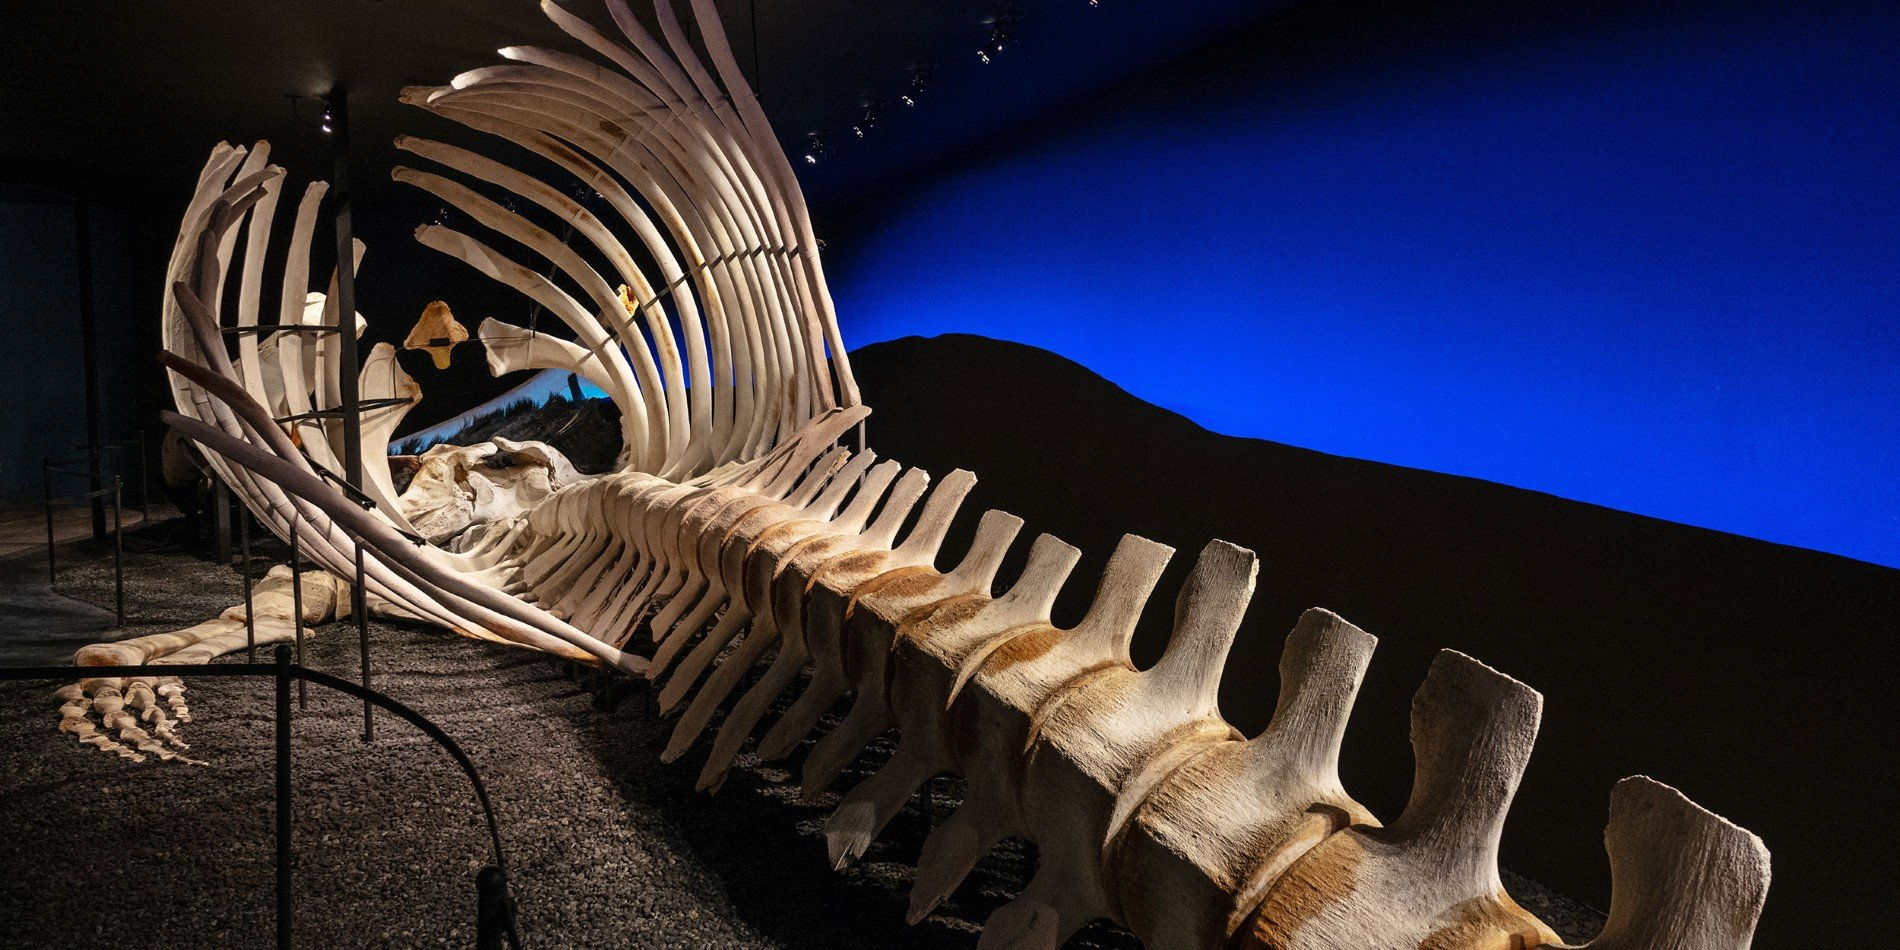 A huge whale skeleton laying in a museum